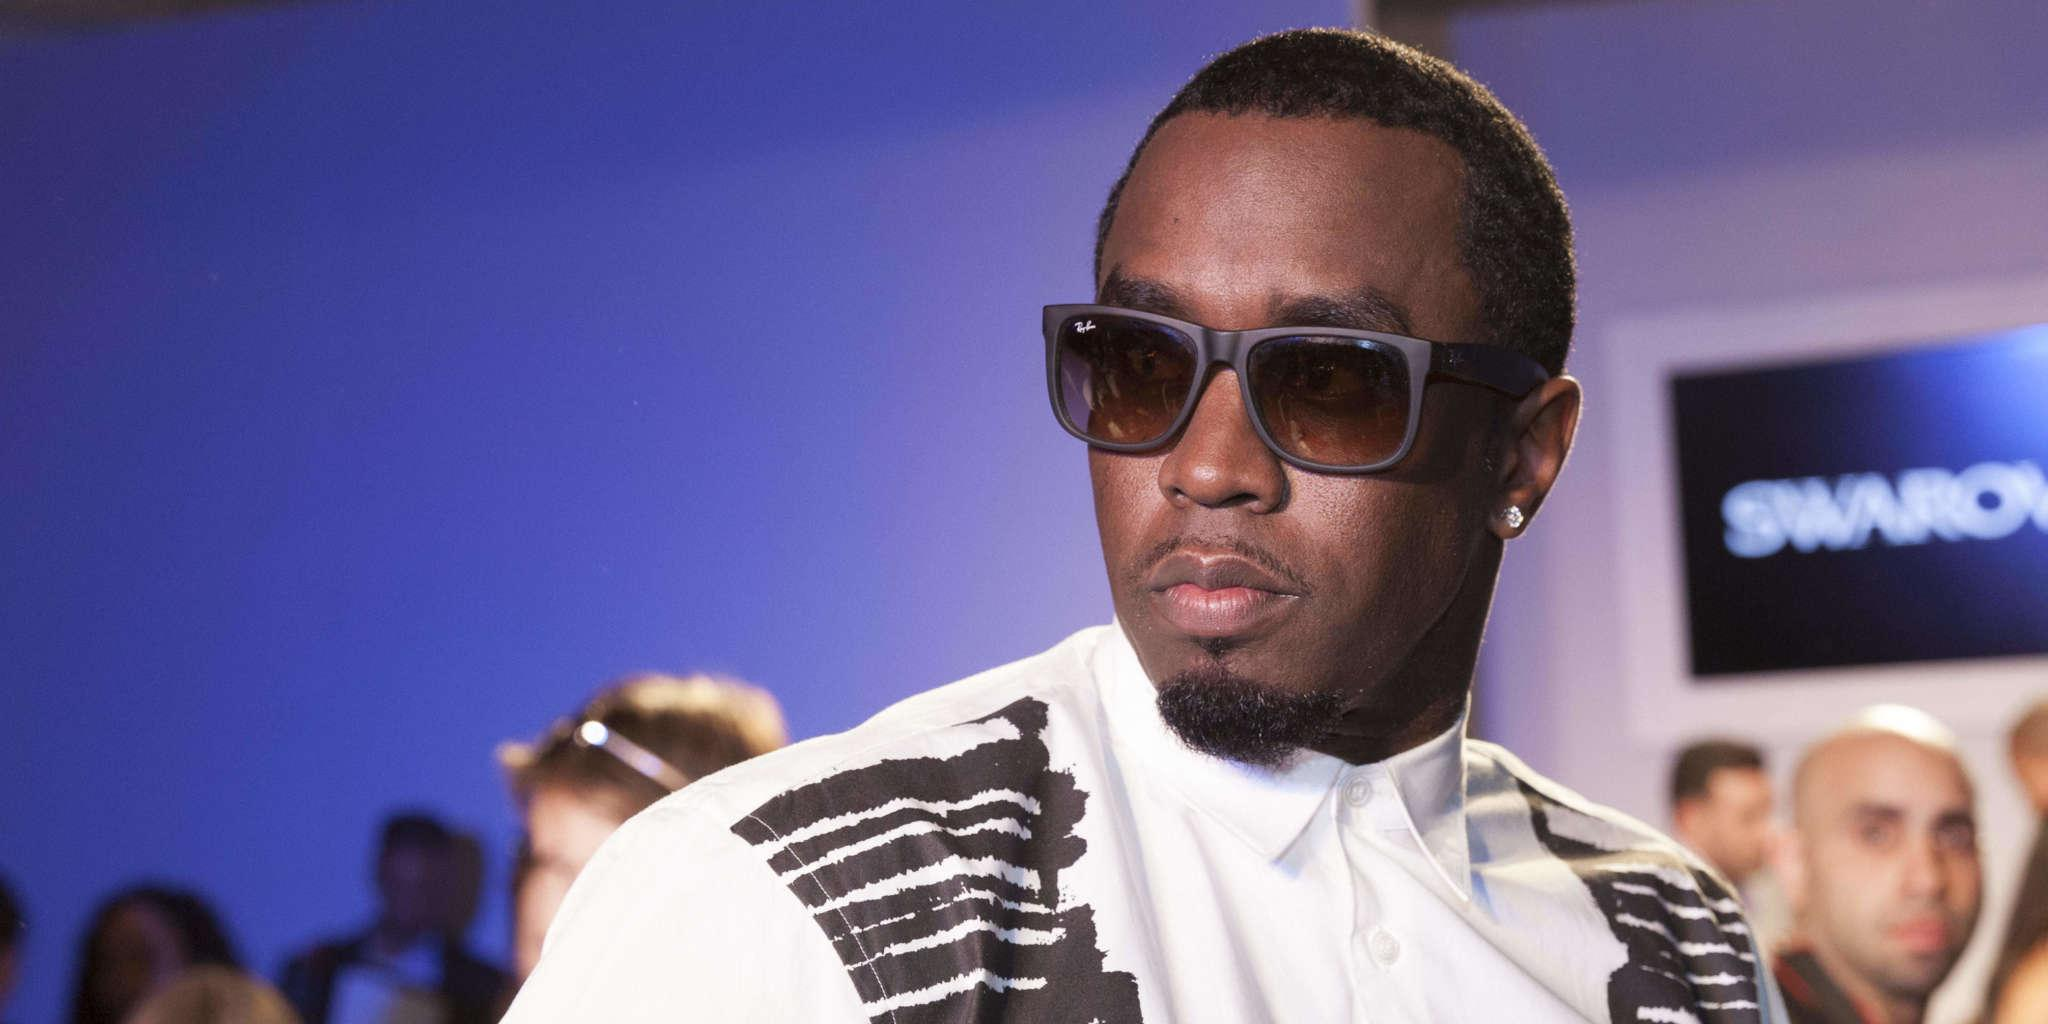 Diddy Supports The 'Free Tianna Coalition' - See His Fans' Reactions